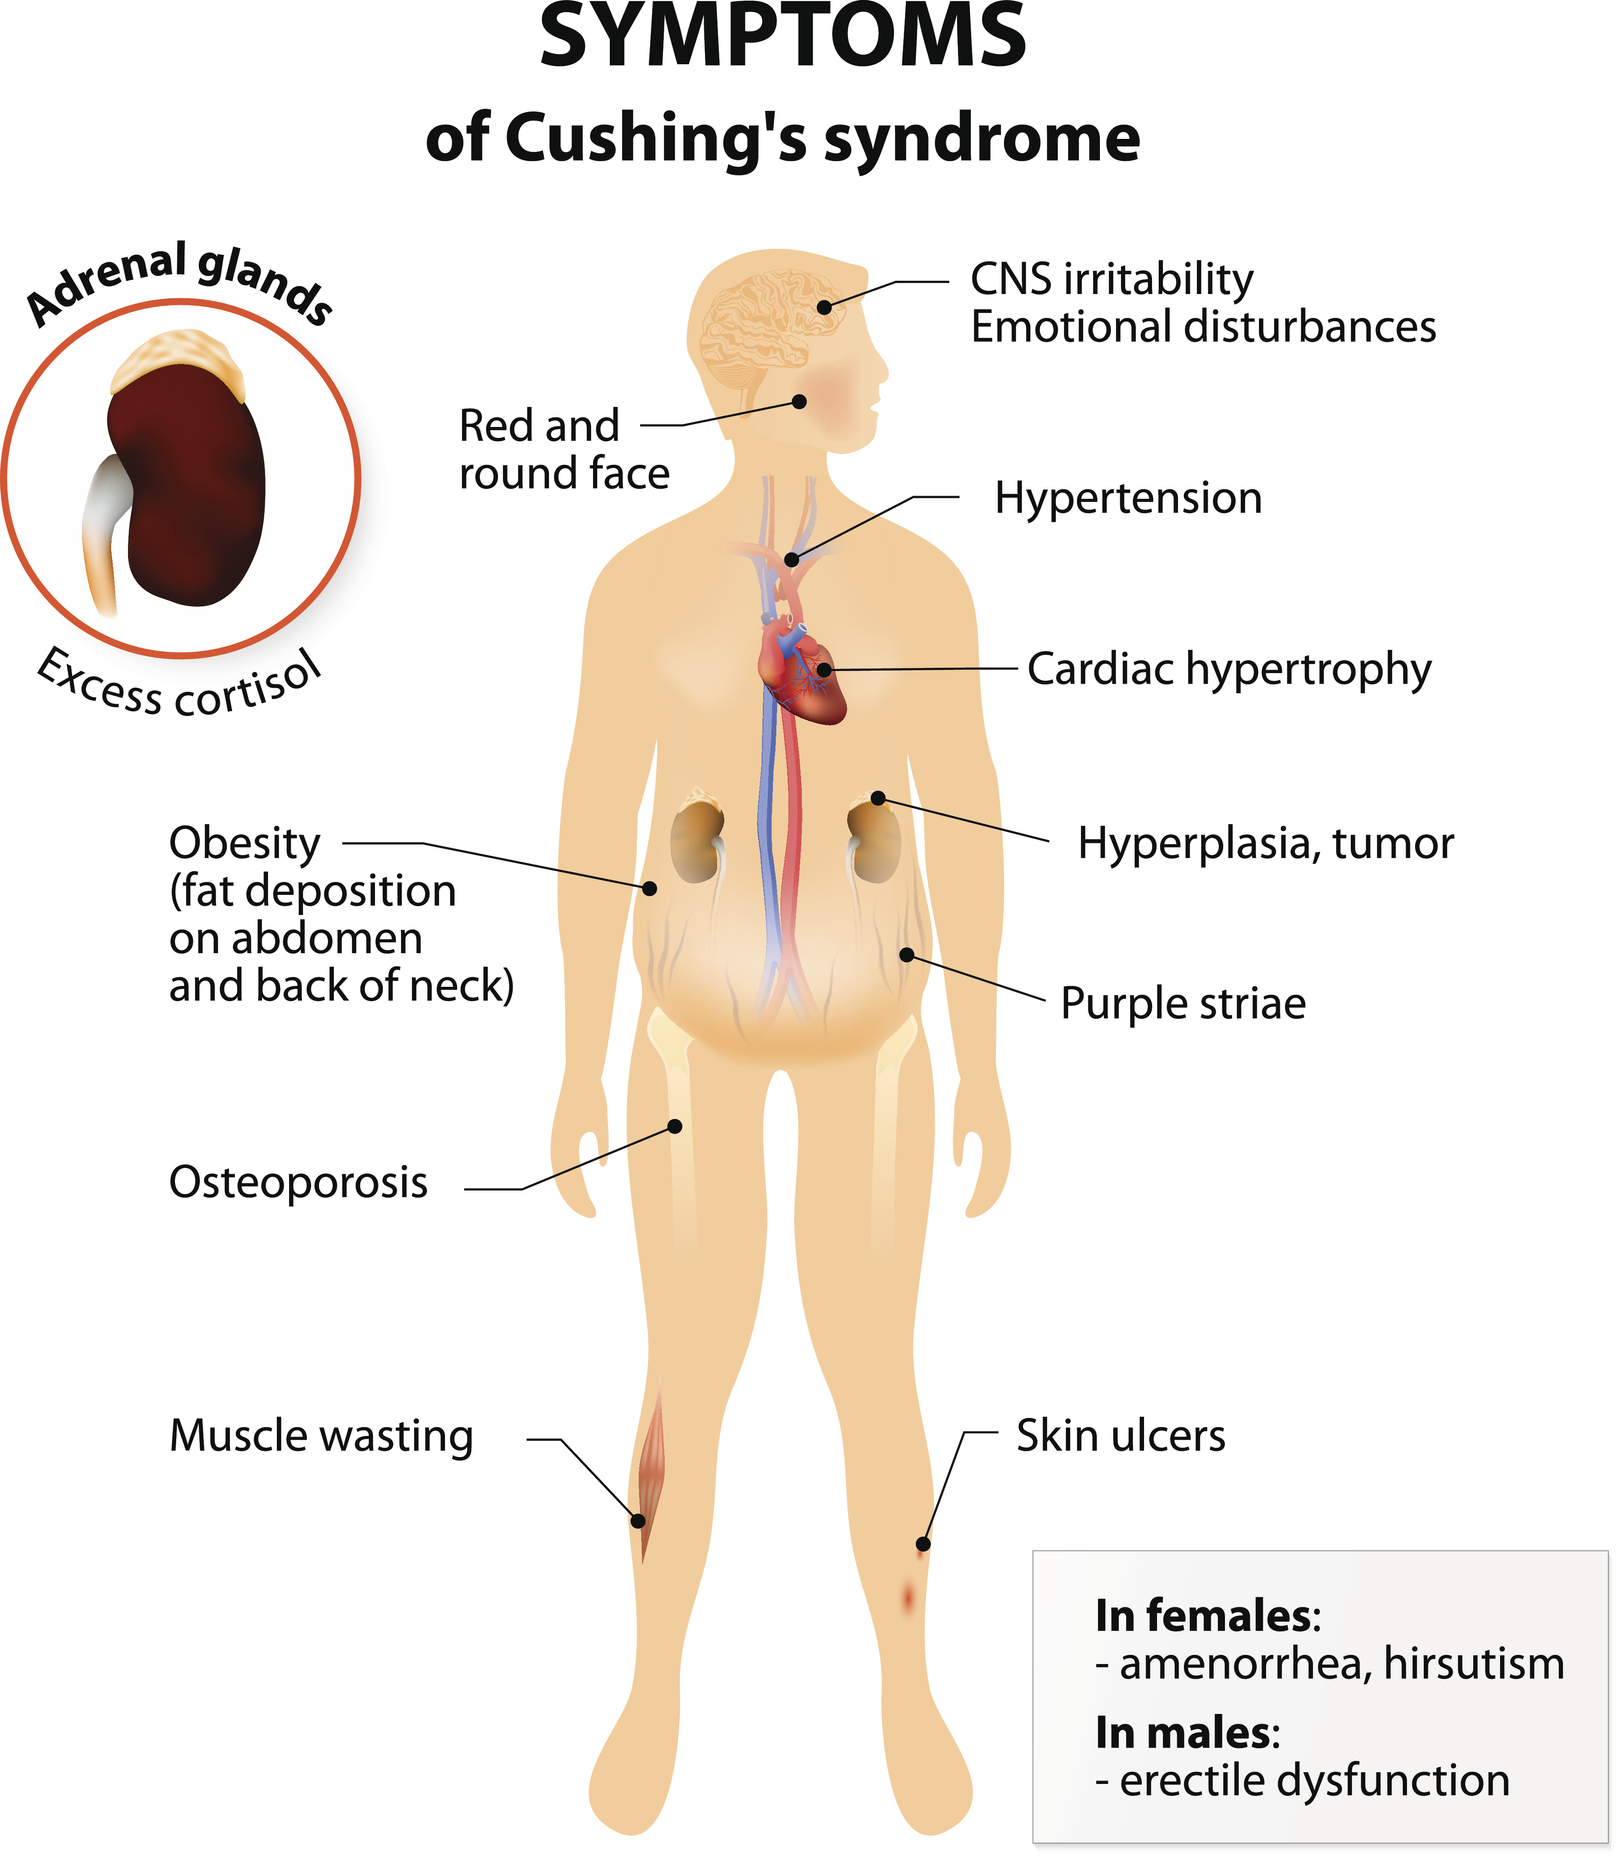 Pituitary Center | Diagram of Cushings Syndrome (Cushing's Syndrome) symptoms